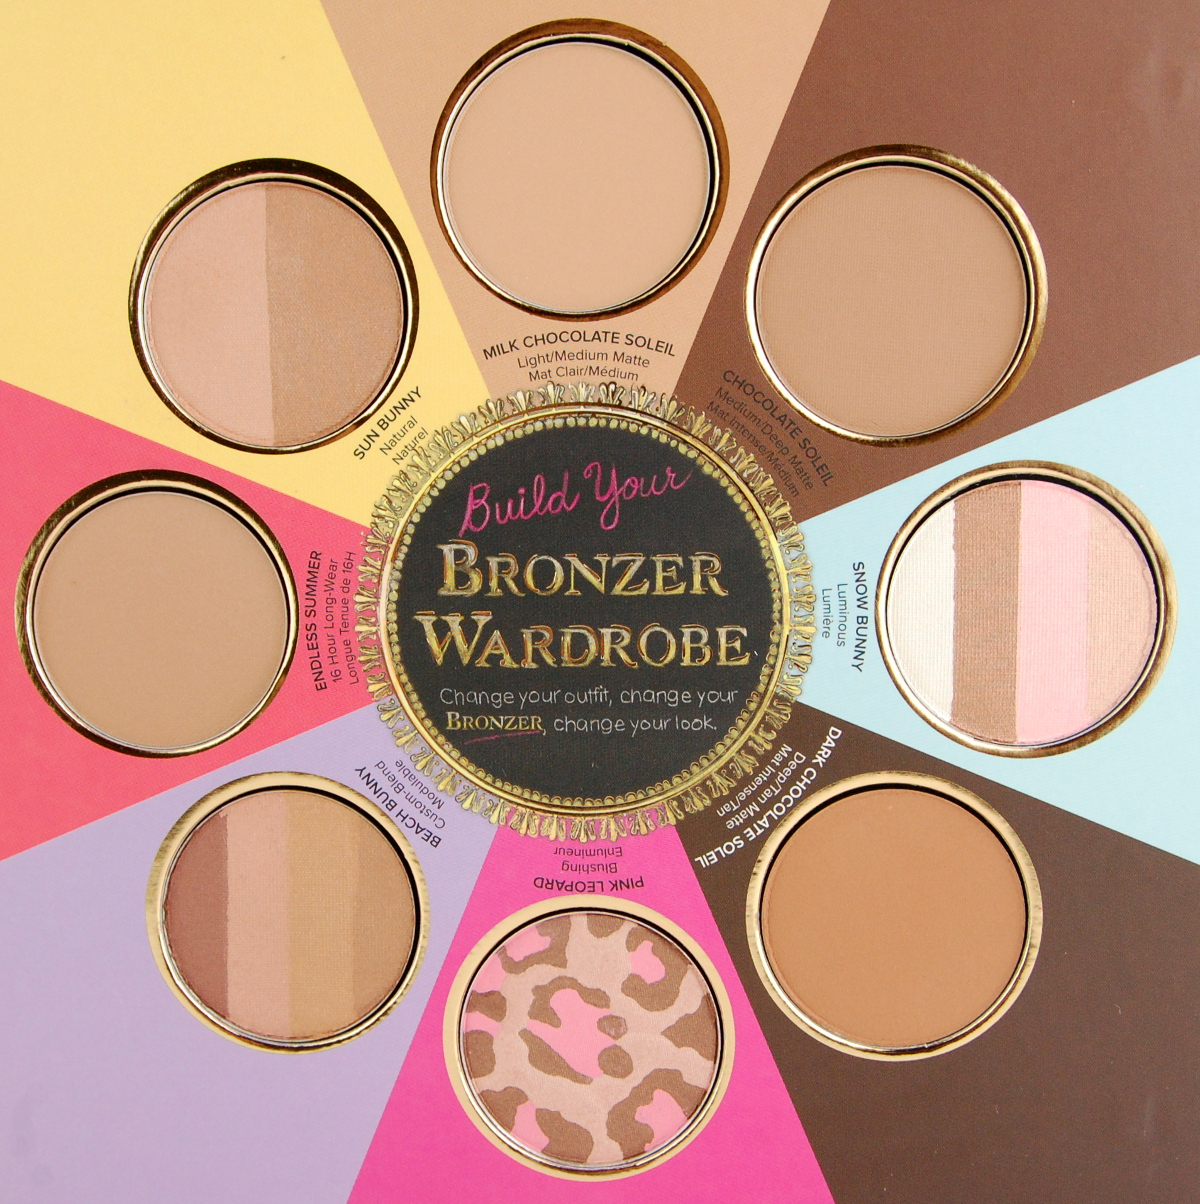 Chocolate Bronzer Too Faced - Pumpkin Chocolate Chip Cookies